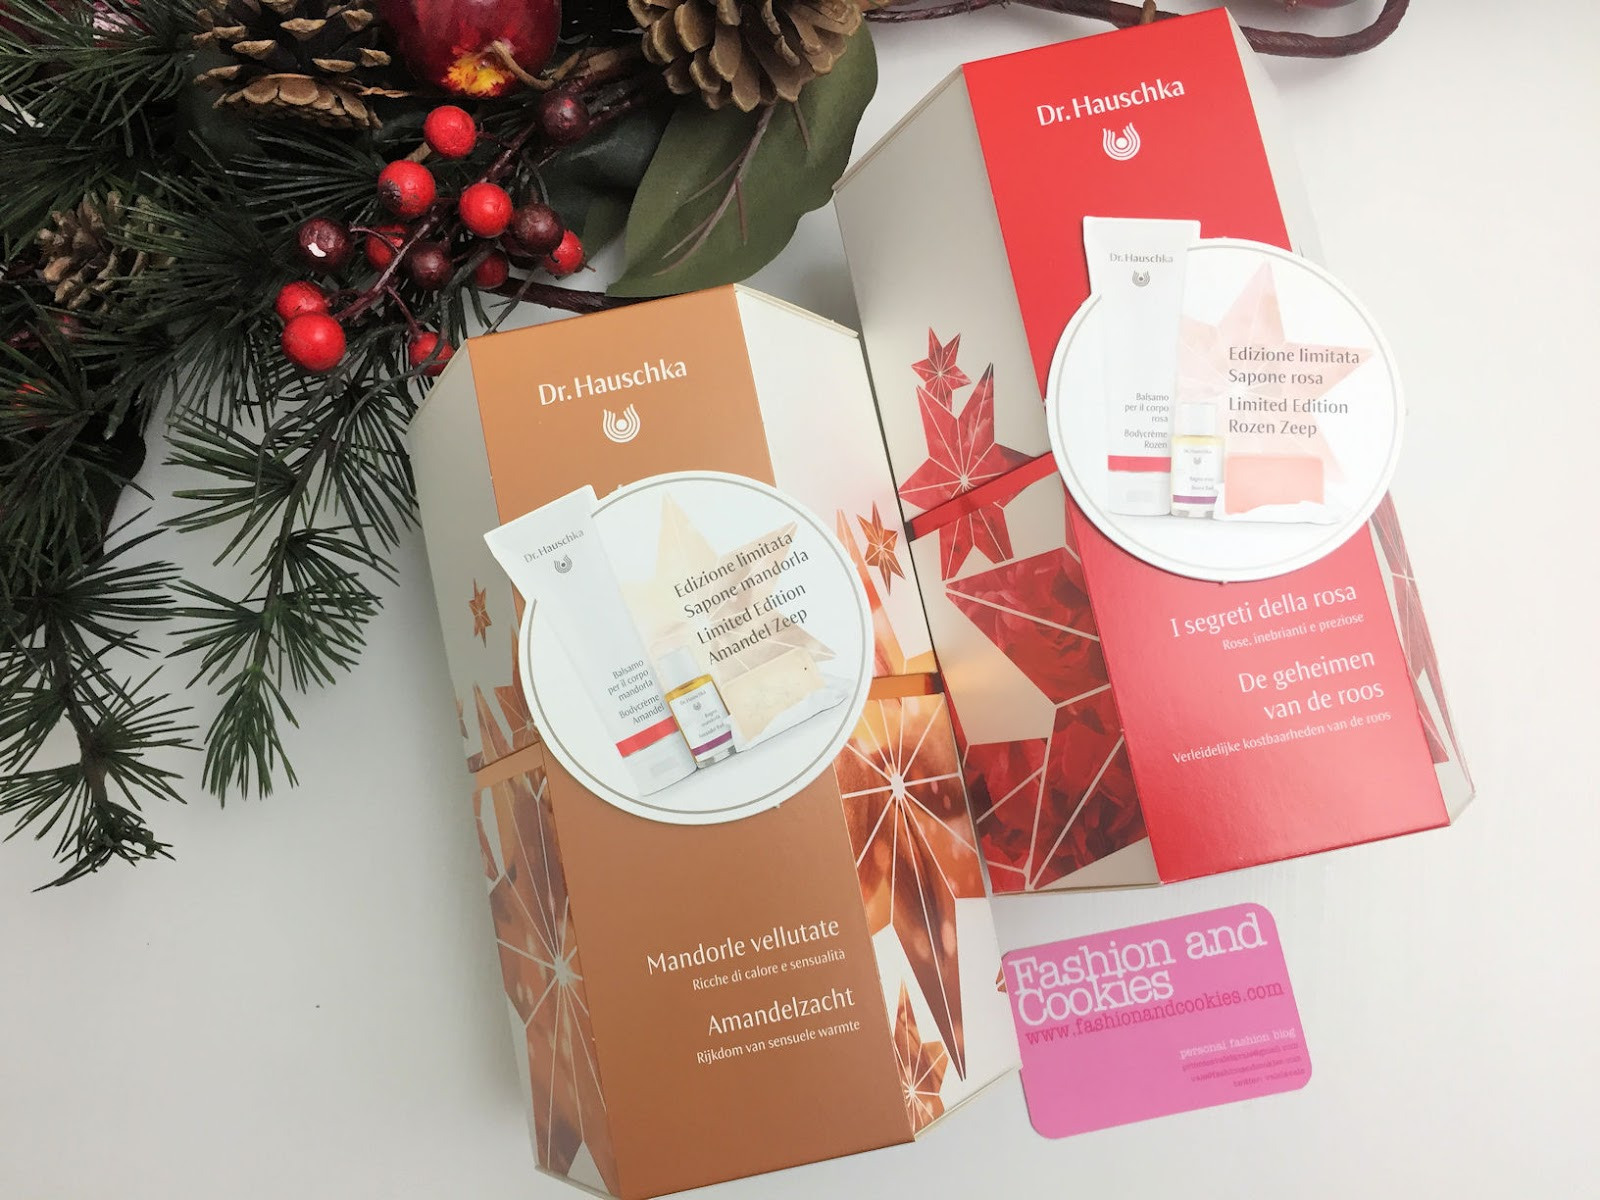 "Idee regalo Natale: cofanetti edizione limitata Dr. Hauschka ""I segreti della rosa"" e ""Mandorle vellutate"" su Fashion and Cookies beauty blog, beauty blogger"